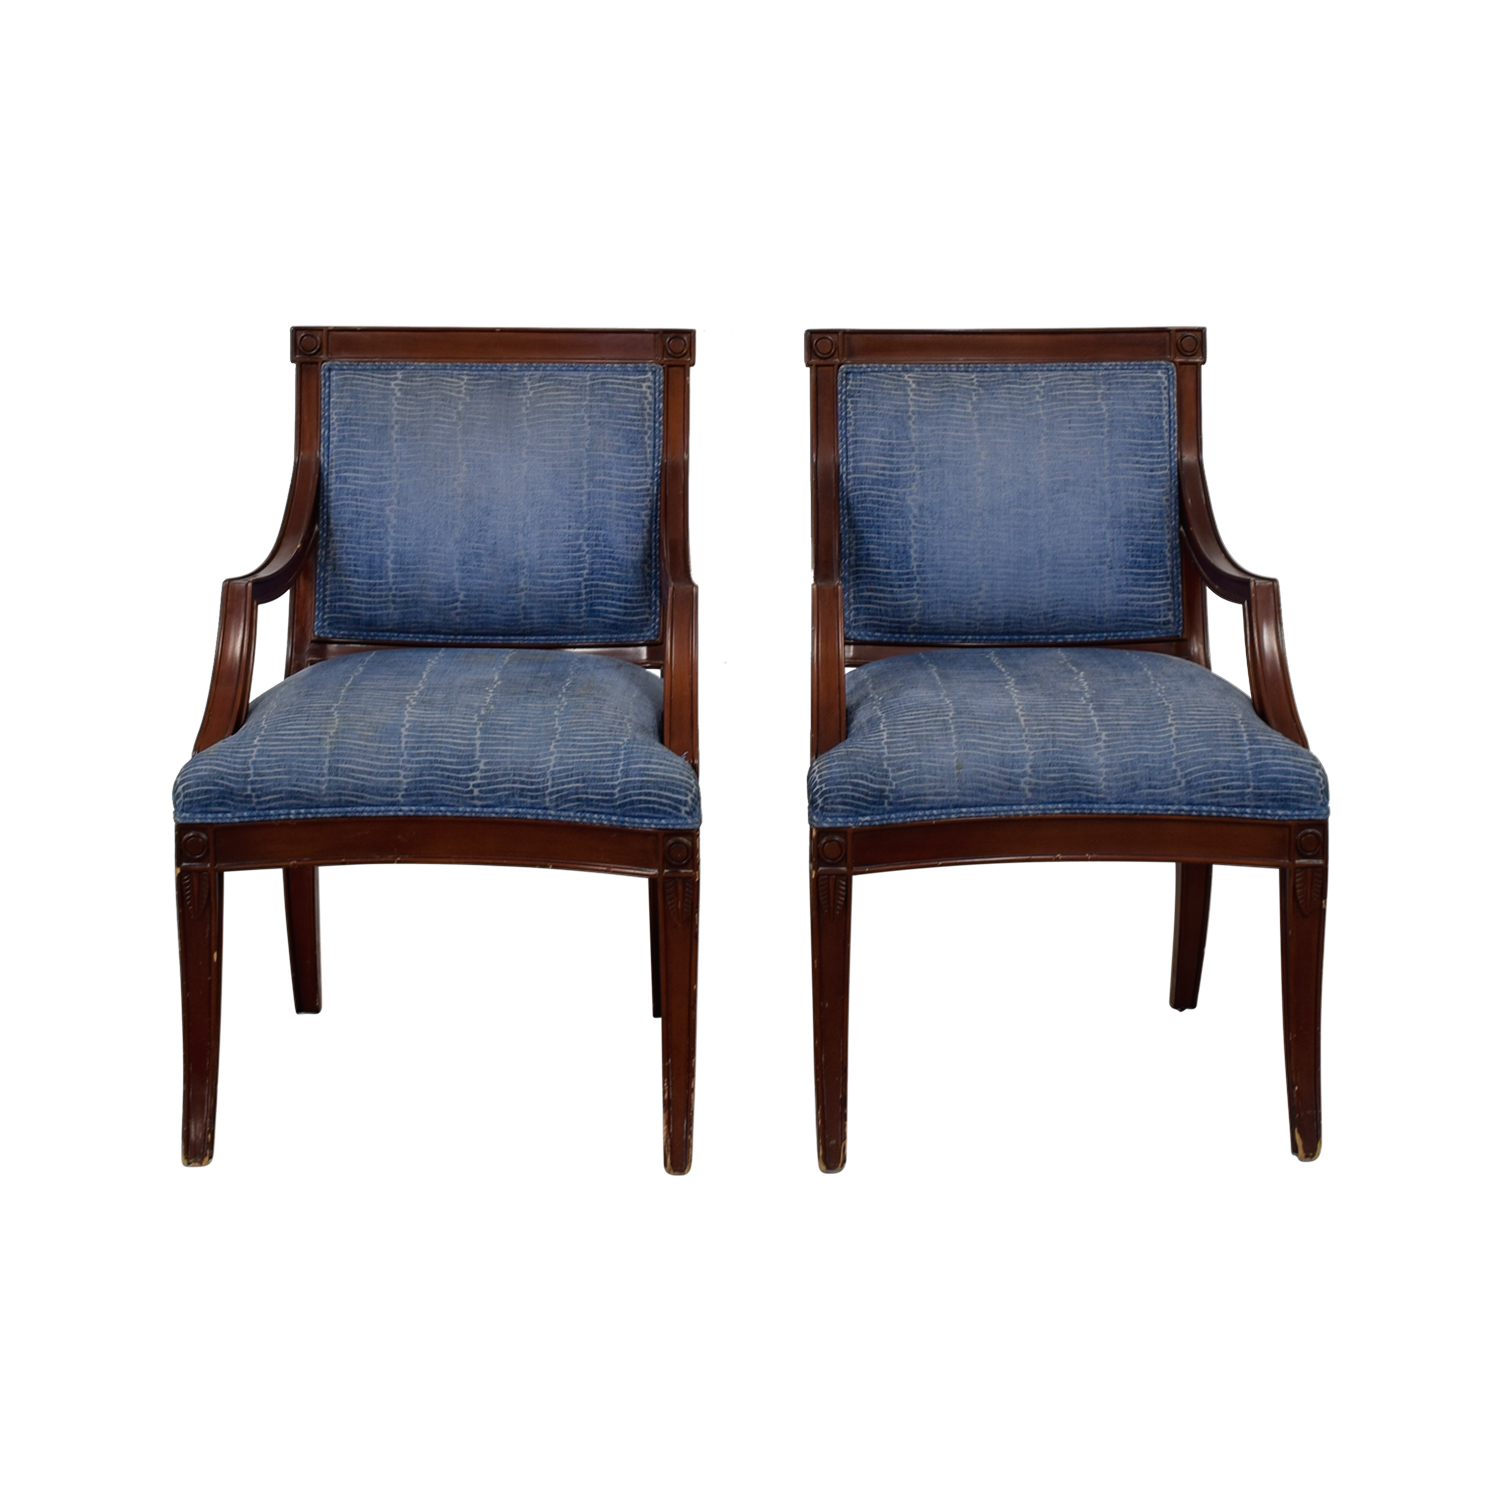 Blue & White Arm Chairs on sale